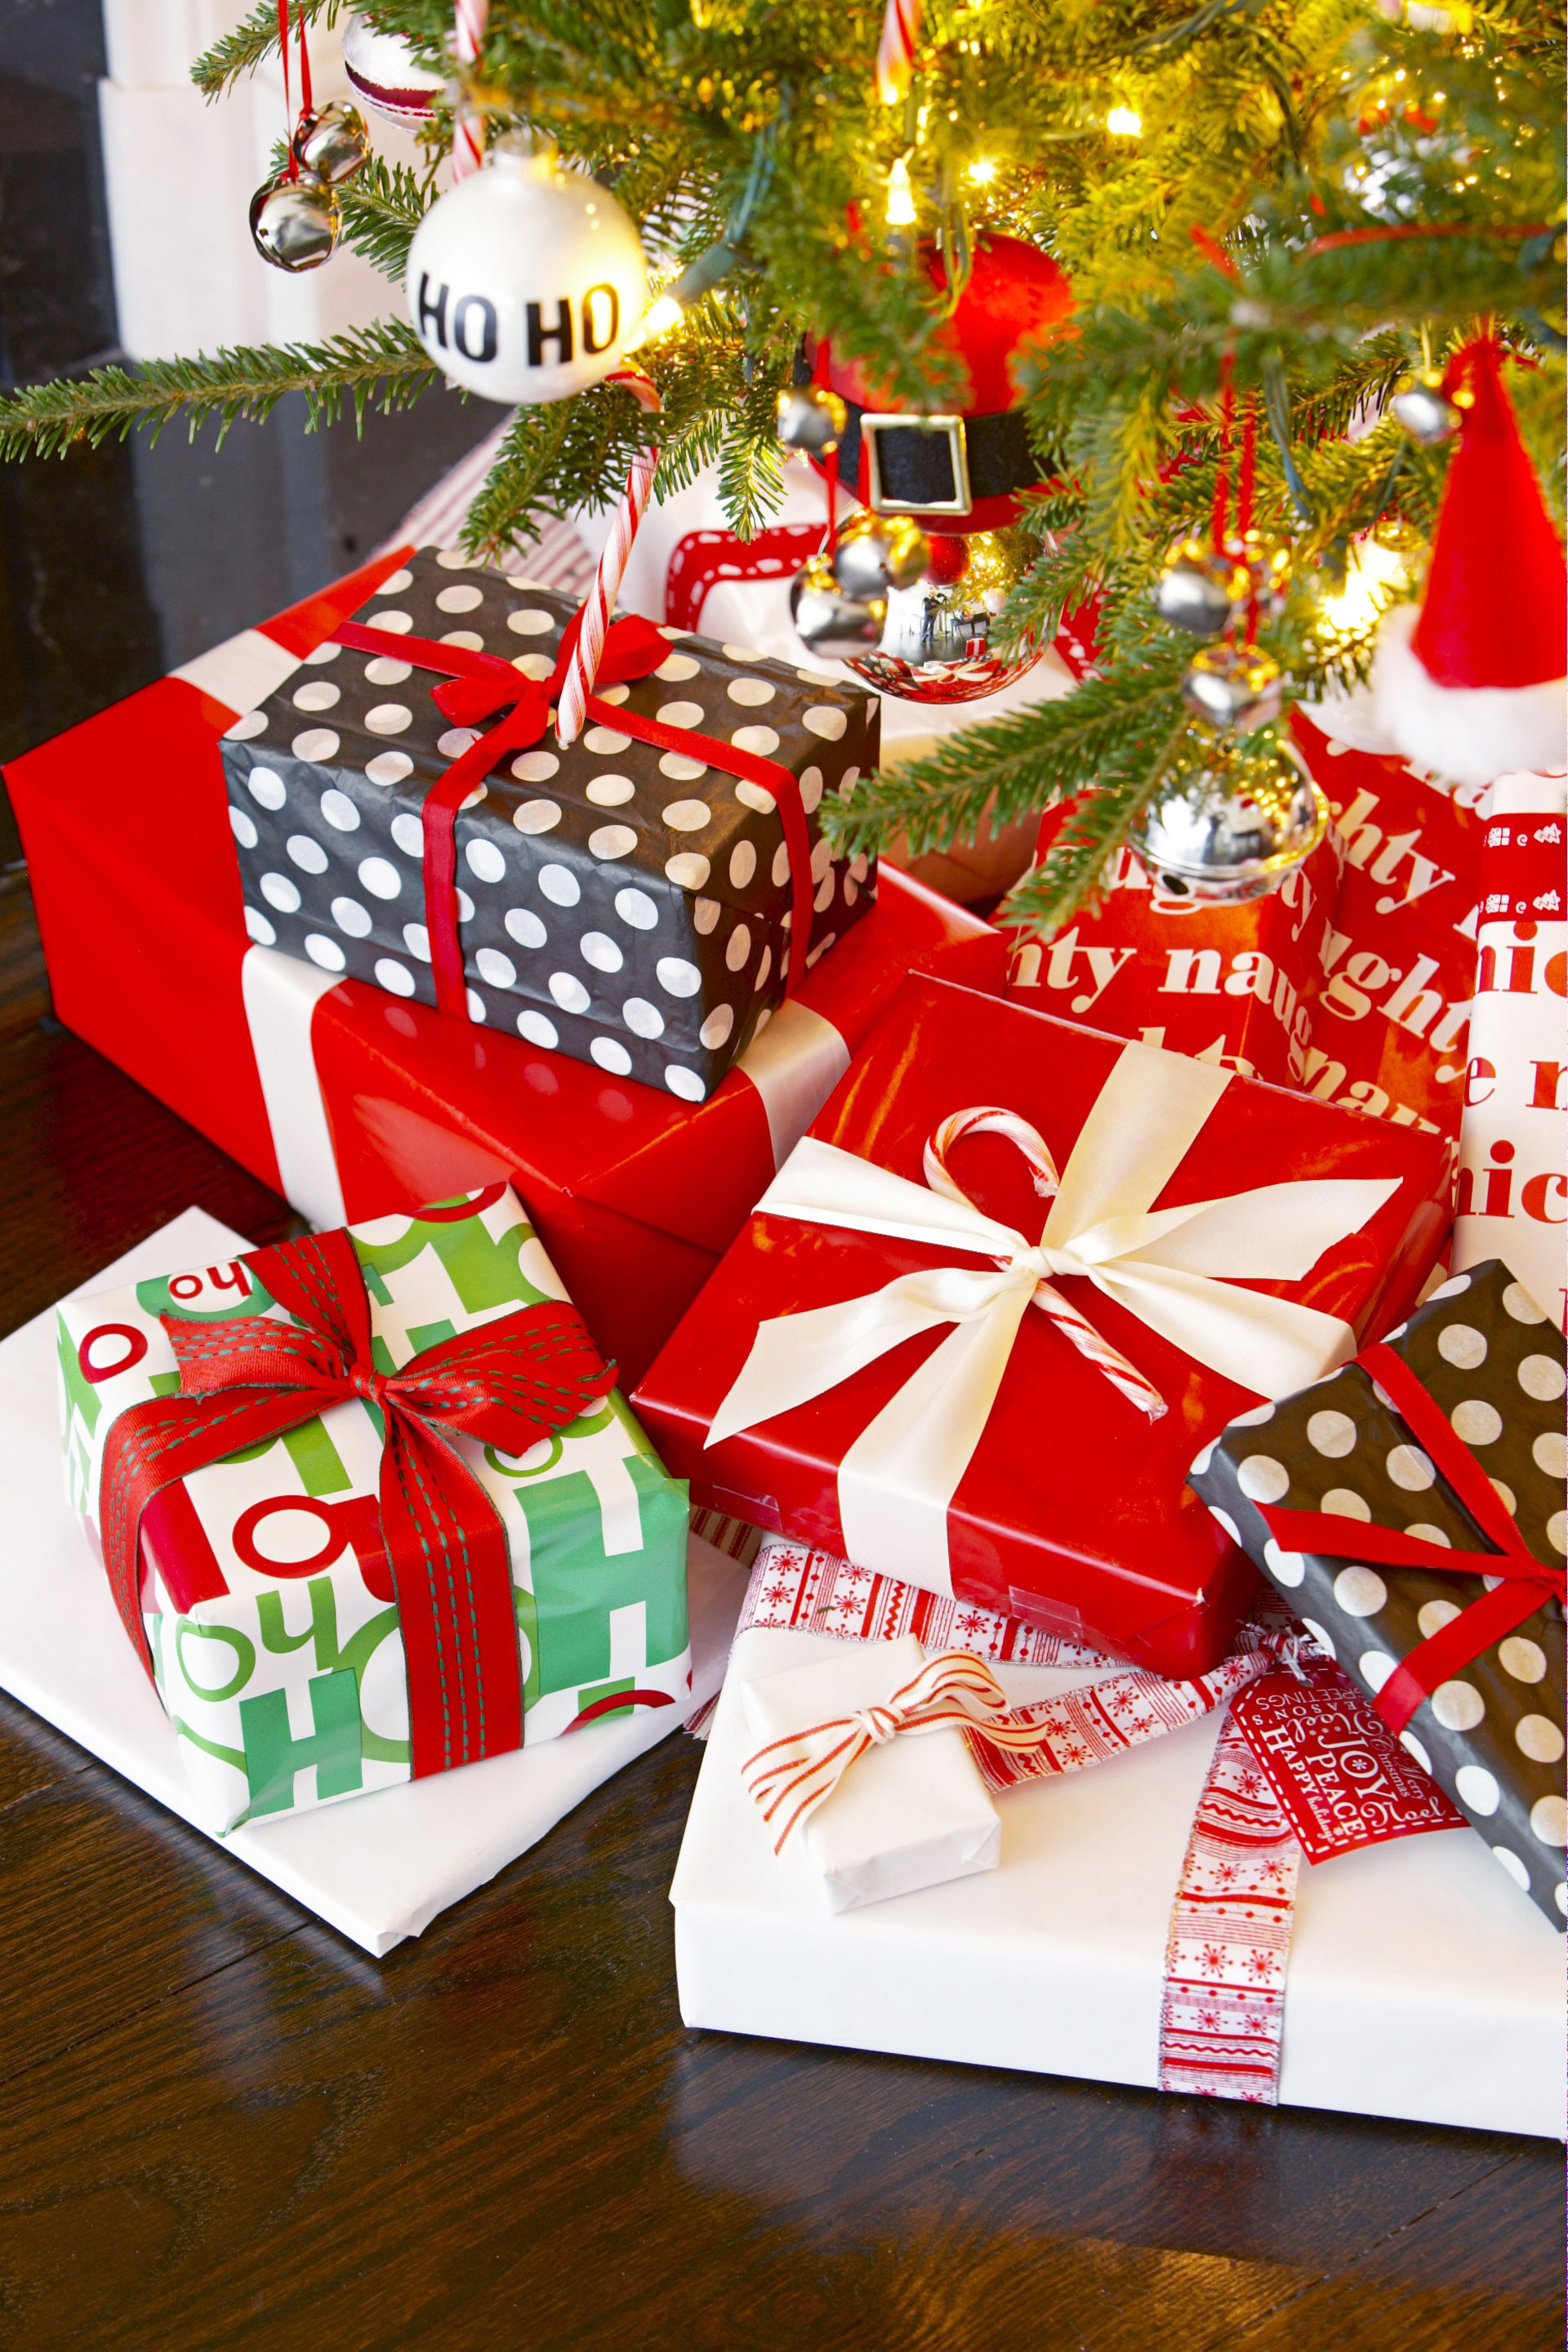 Best ideas about Holiday Party Gift Ideas . Save or Pin 33 Unique Christmas Gift Wrapping Ideas DIY Holiday Gift Now.